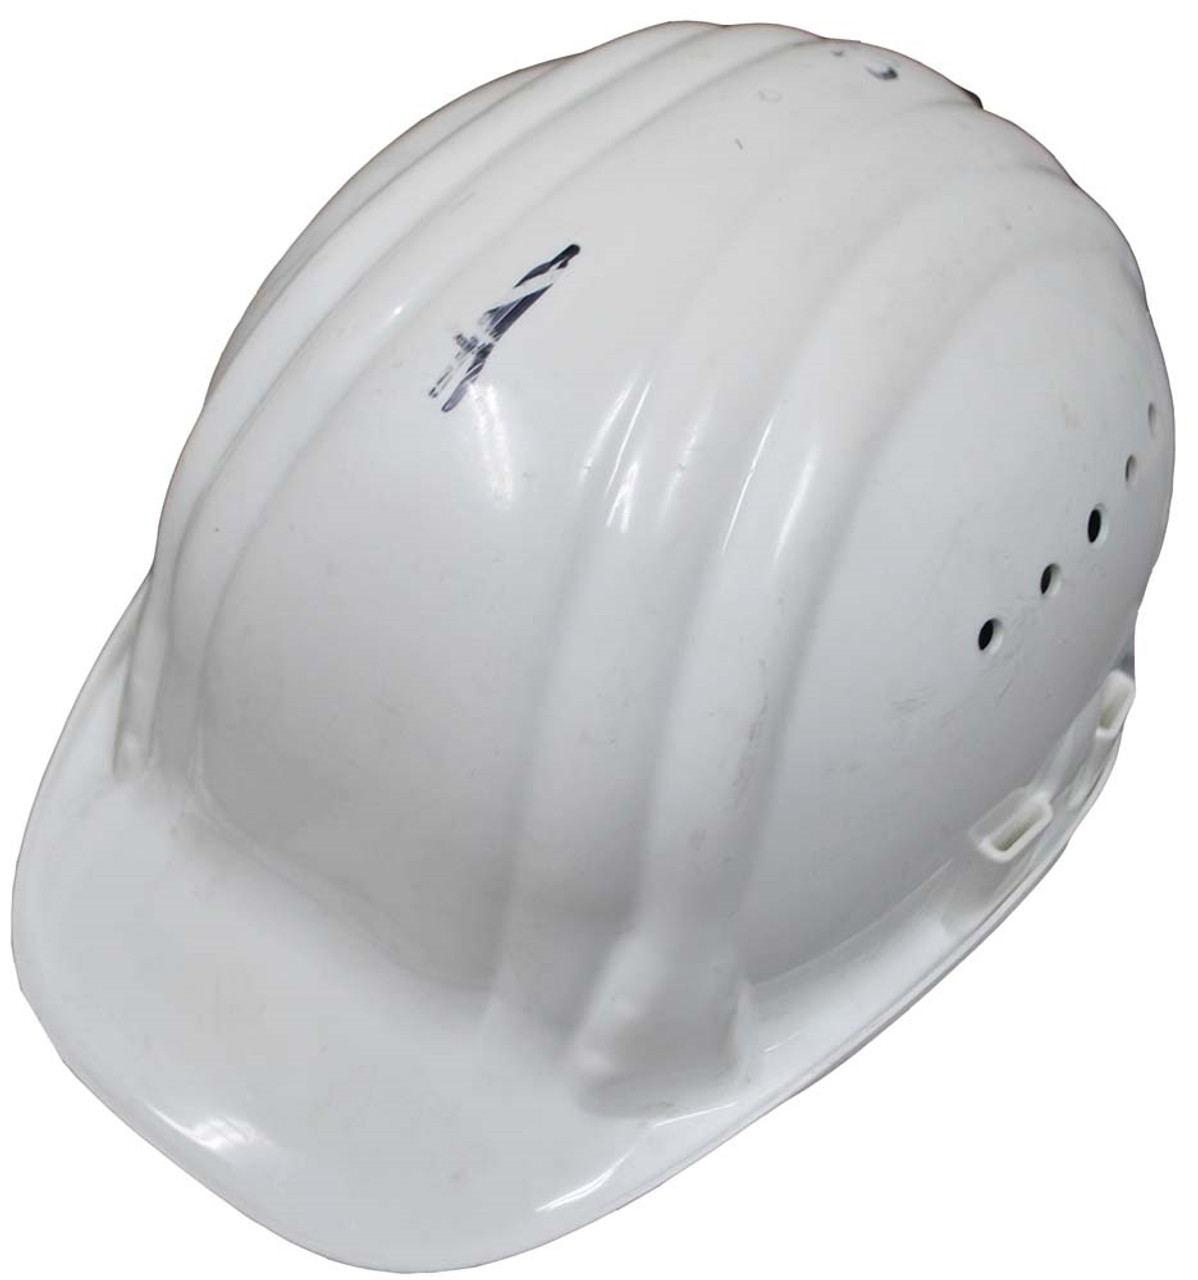 Bw Issue White Engineers/Construction Helmet from Hessen Antique